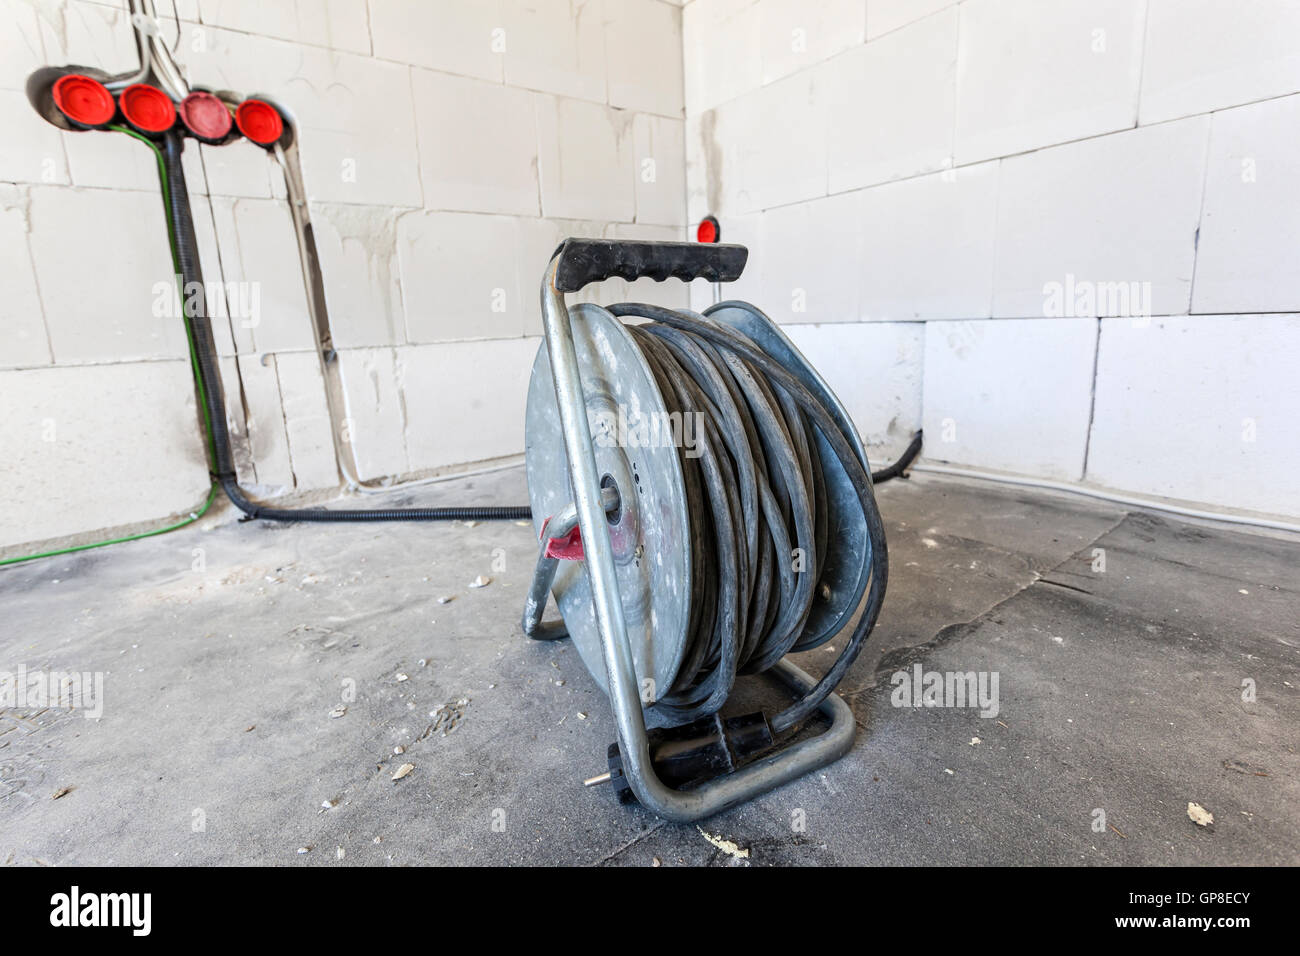 Cable Drum Stock Photos & Cable Drum Stock Images - Alamy